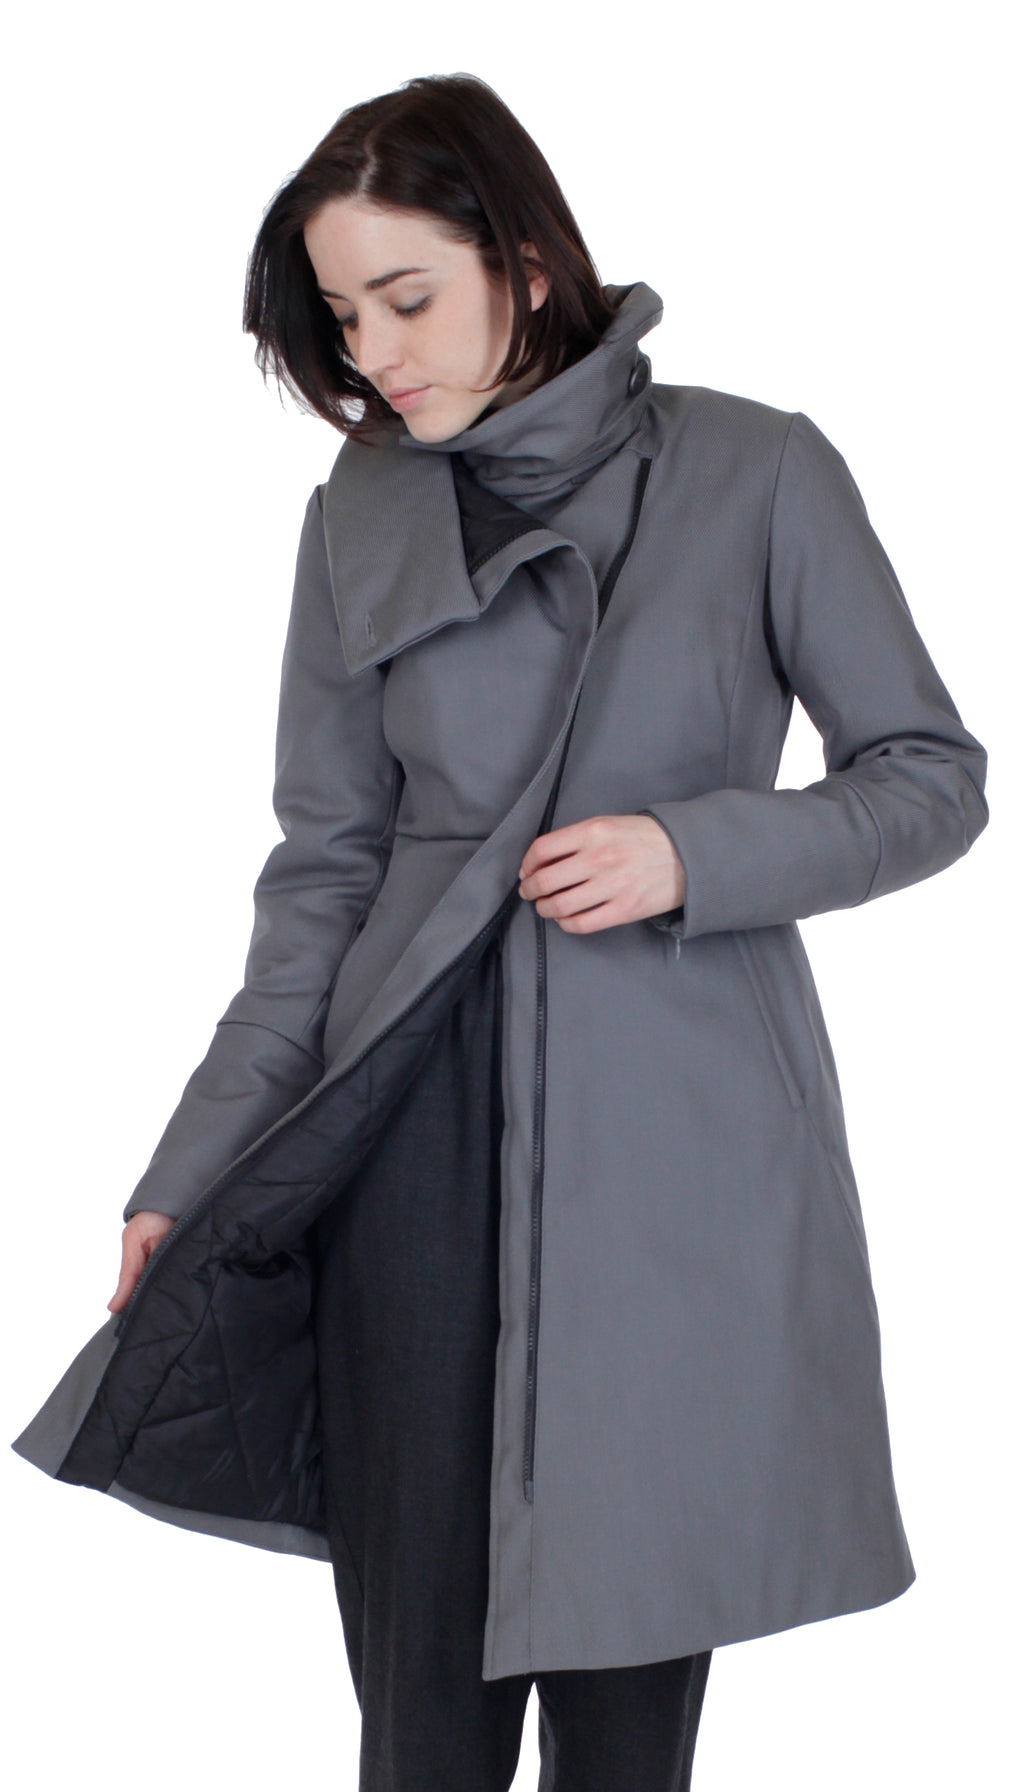 High Collar thinsulated zip coat: Grey Nylon